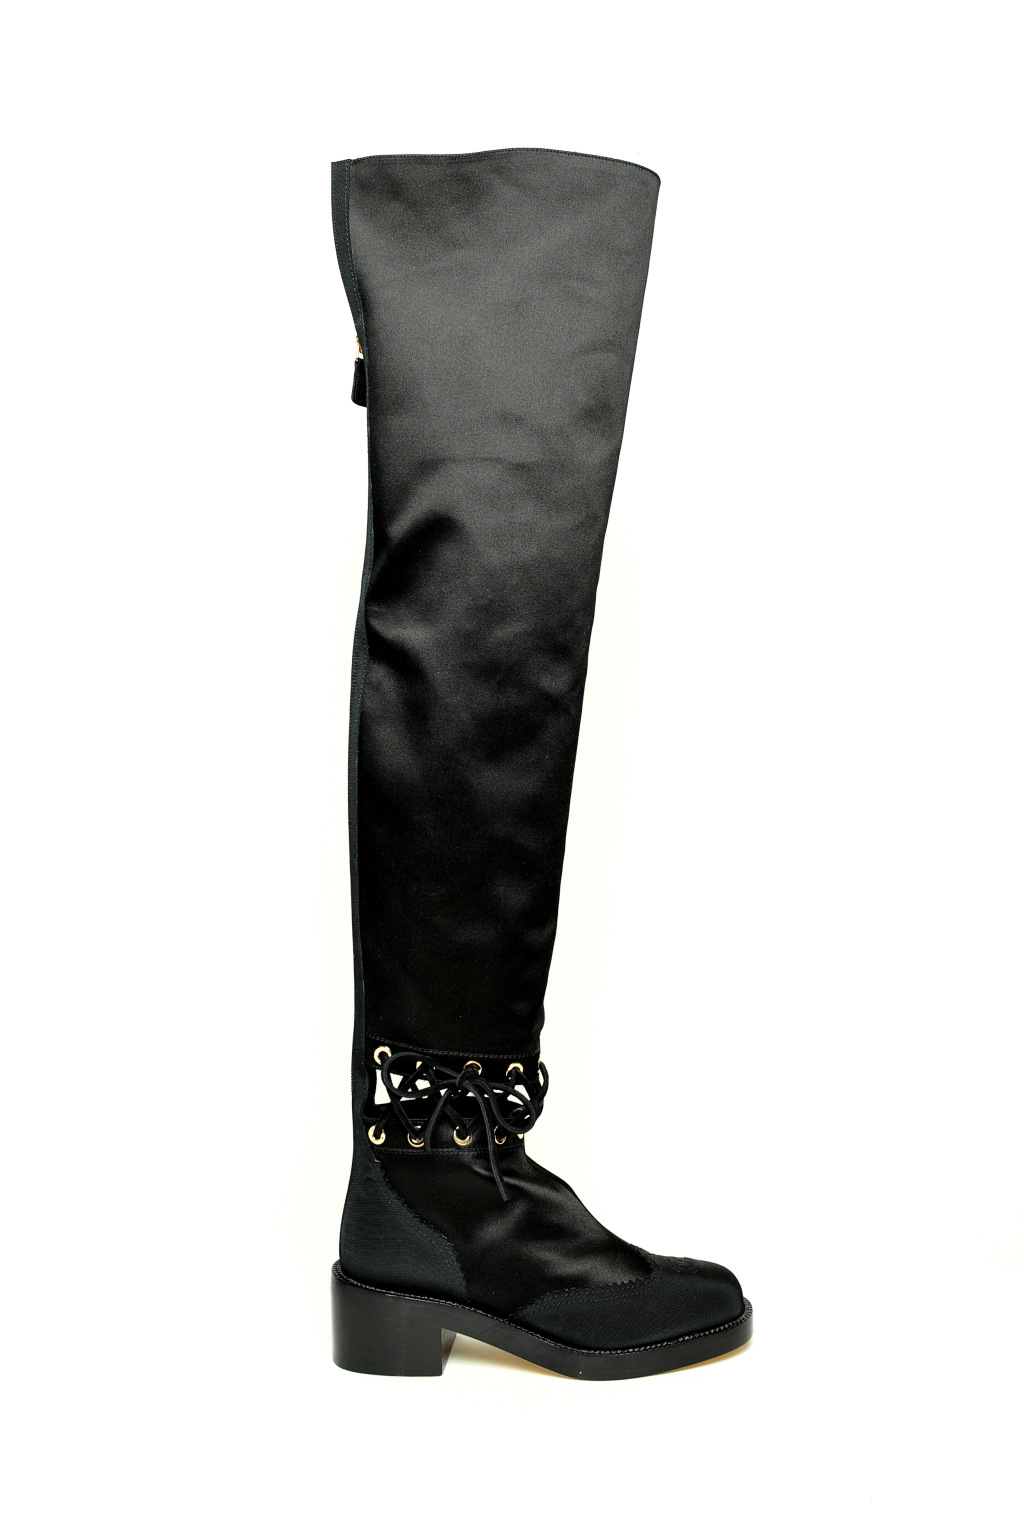 4-chanel-tall-boot-5